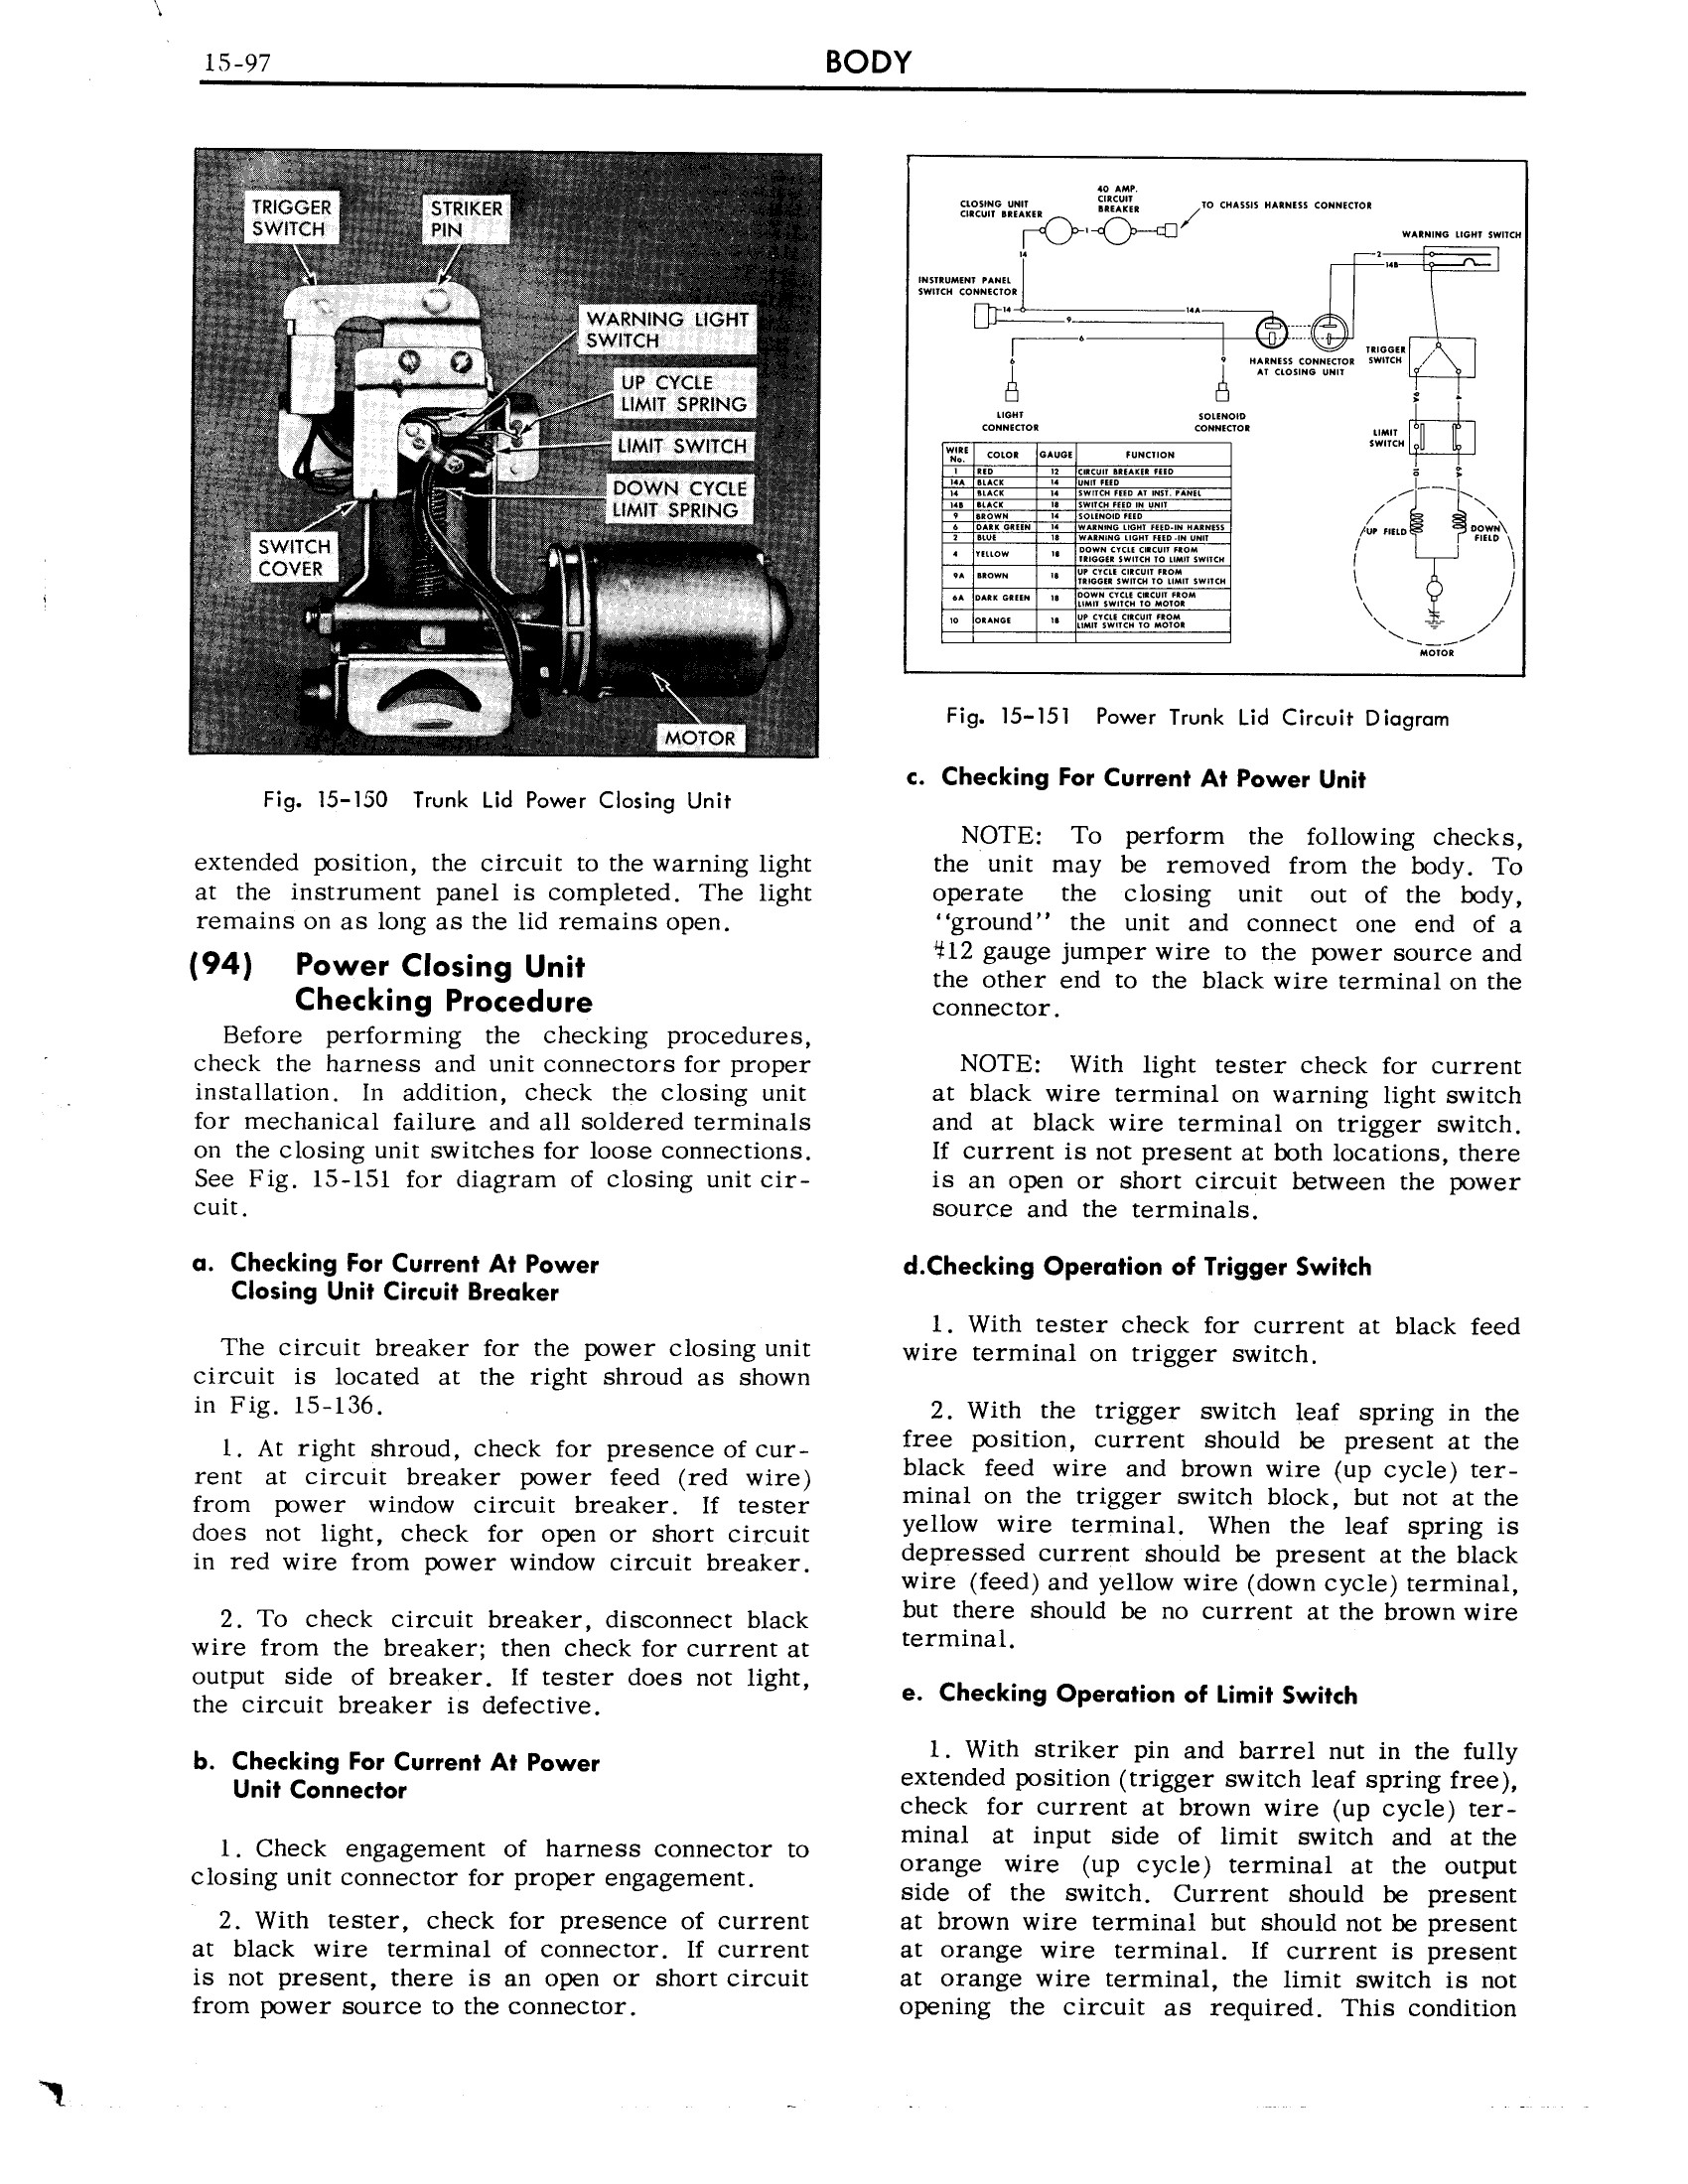 1959 Cadillac Shop Manual- Body Page 97 of 99